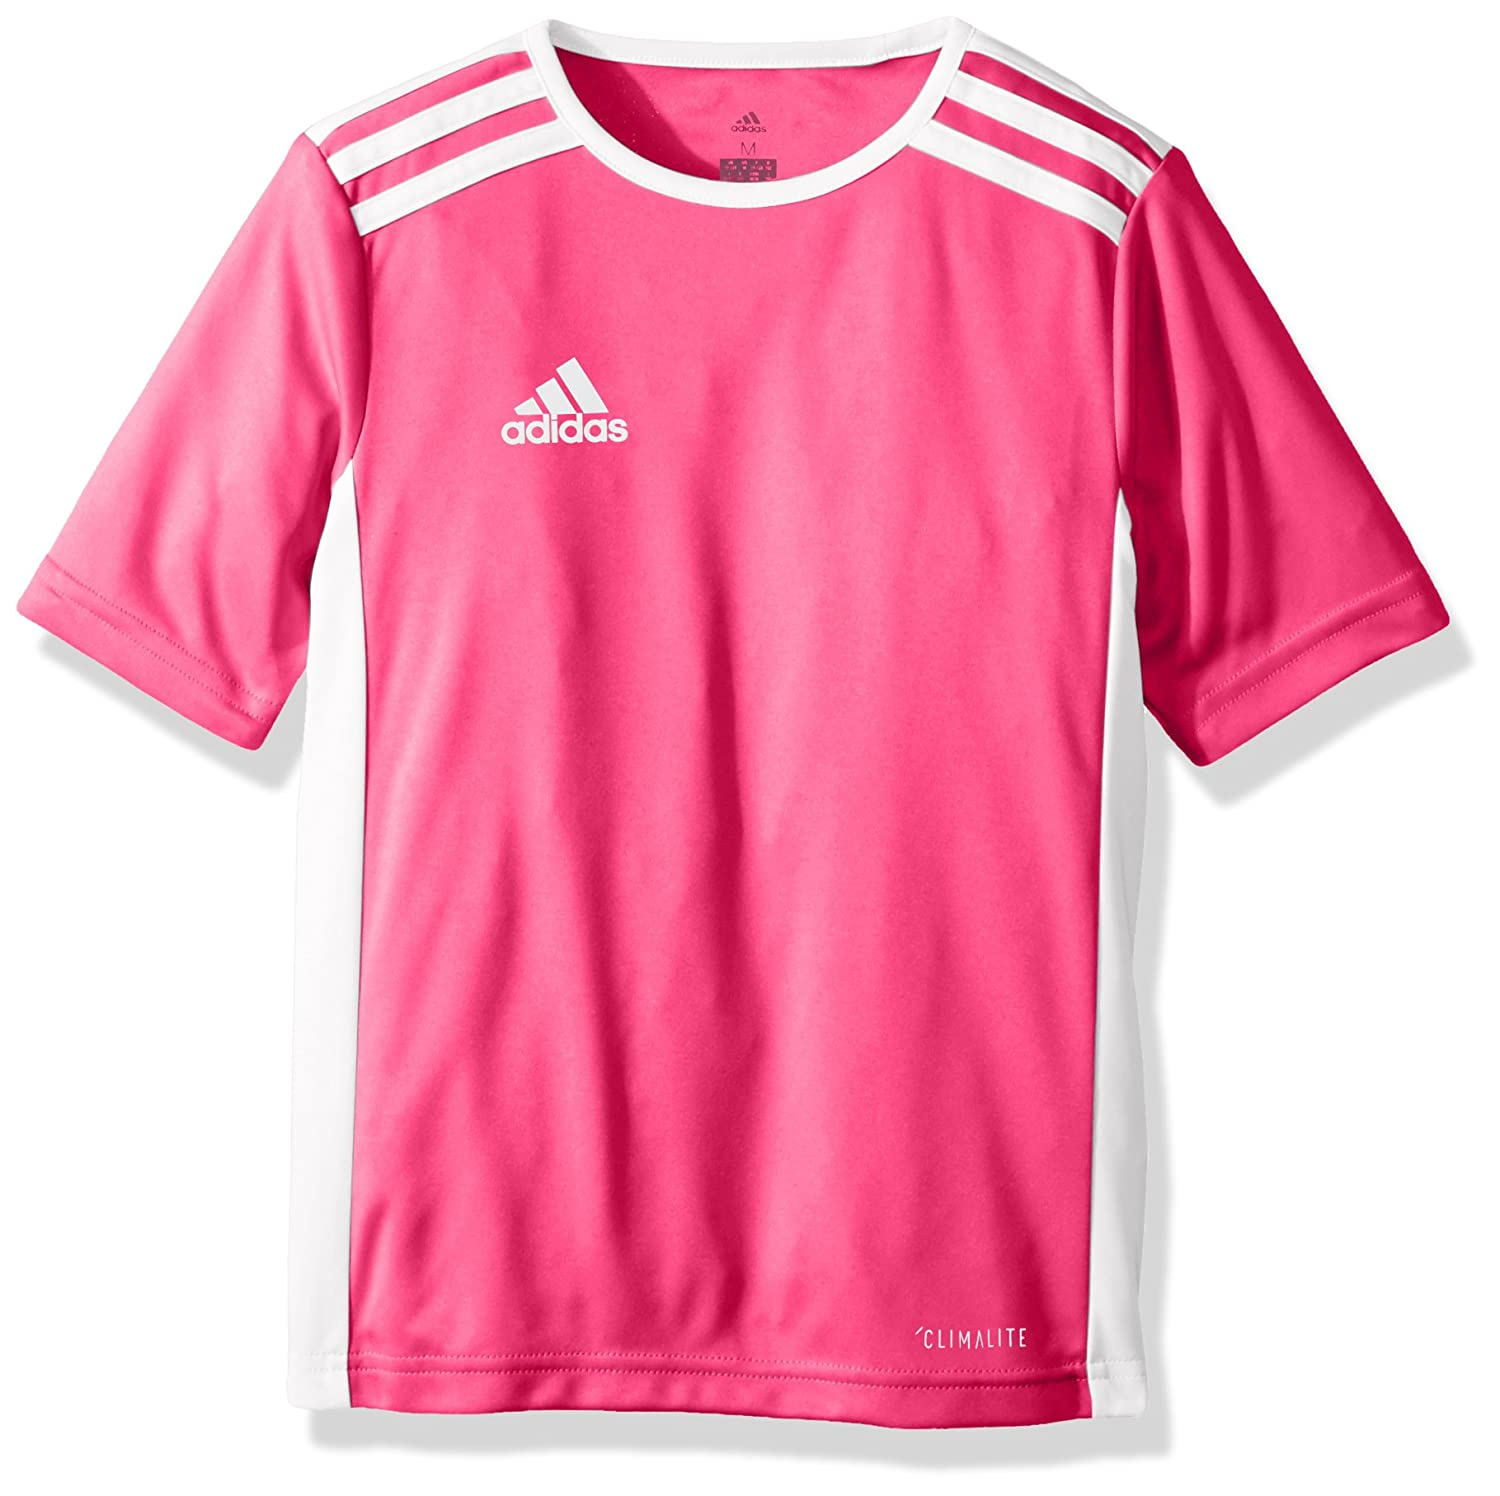 Adidas エントラーダジャージー 男子用 サッカー 18。 B072KPZHRL Small|Shock Pink/White Shock Pink/White Small